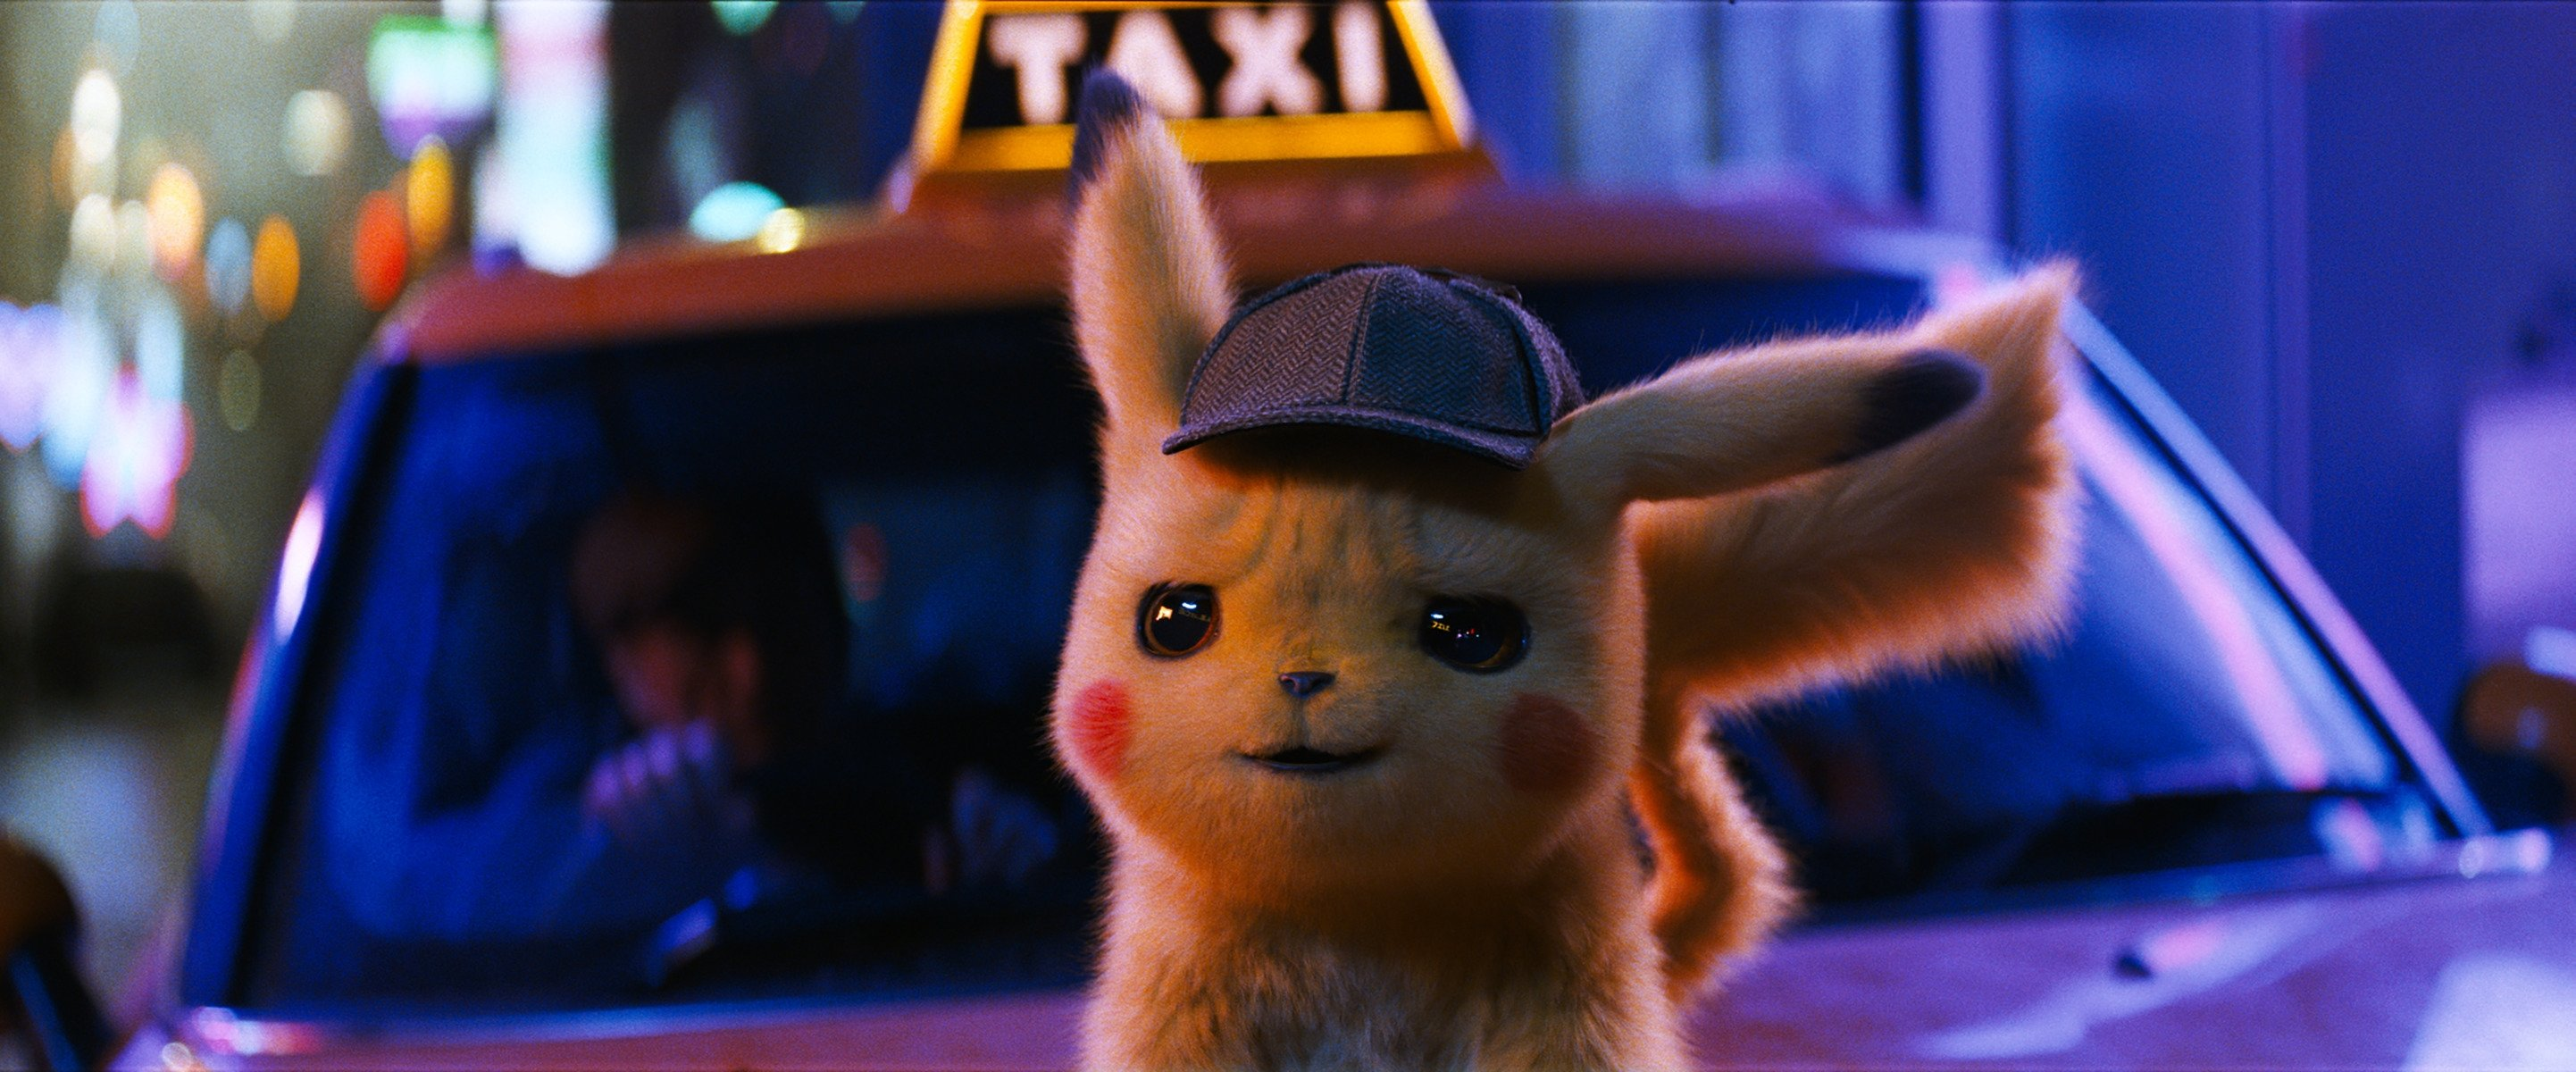 """The character """"Detective Pikachu,"""" voiced by Ryan Reynolds, stands atop a taxi car, in a scene from 'Pokemon Detective Pikachu.' (Warner Bros. Pictures via AP)"""